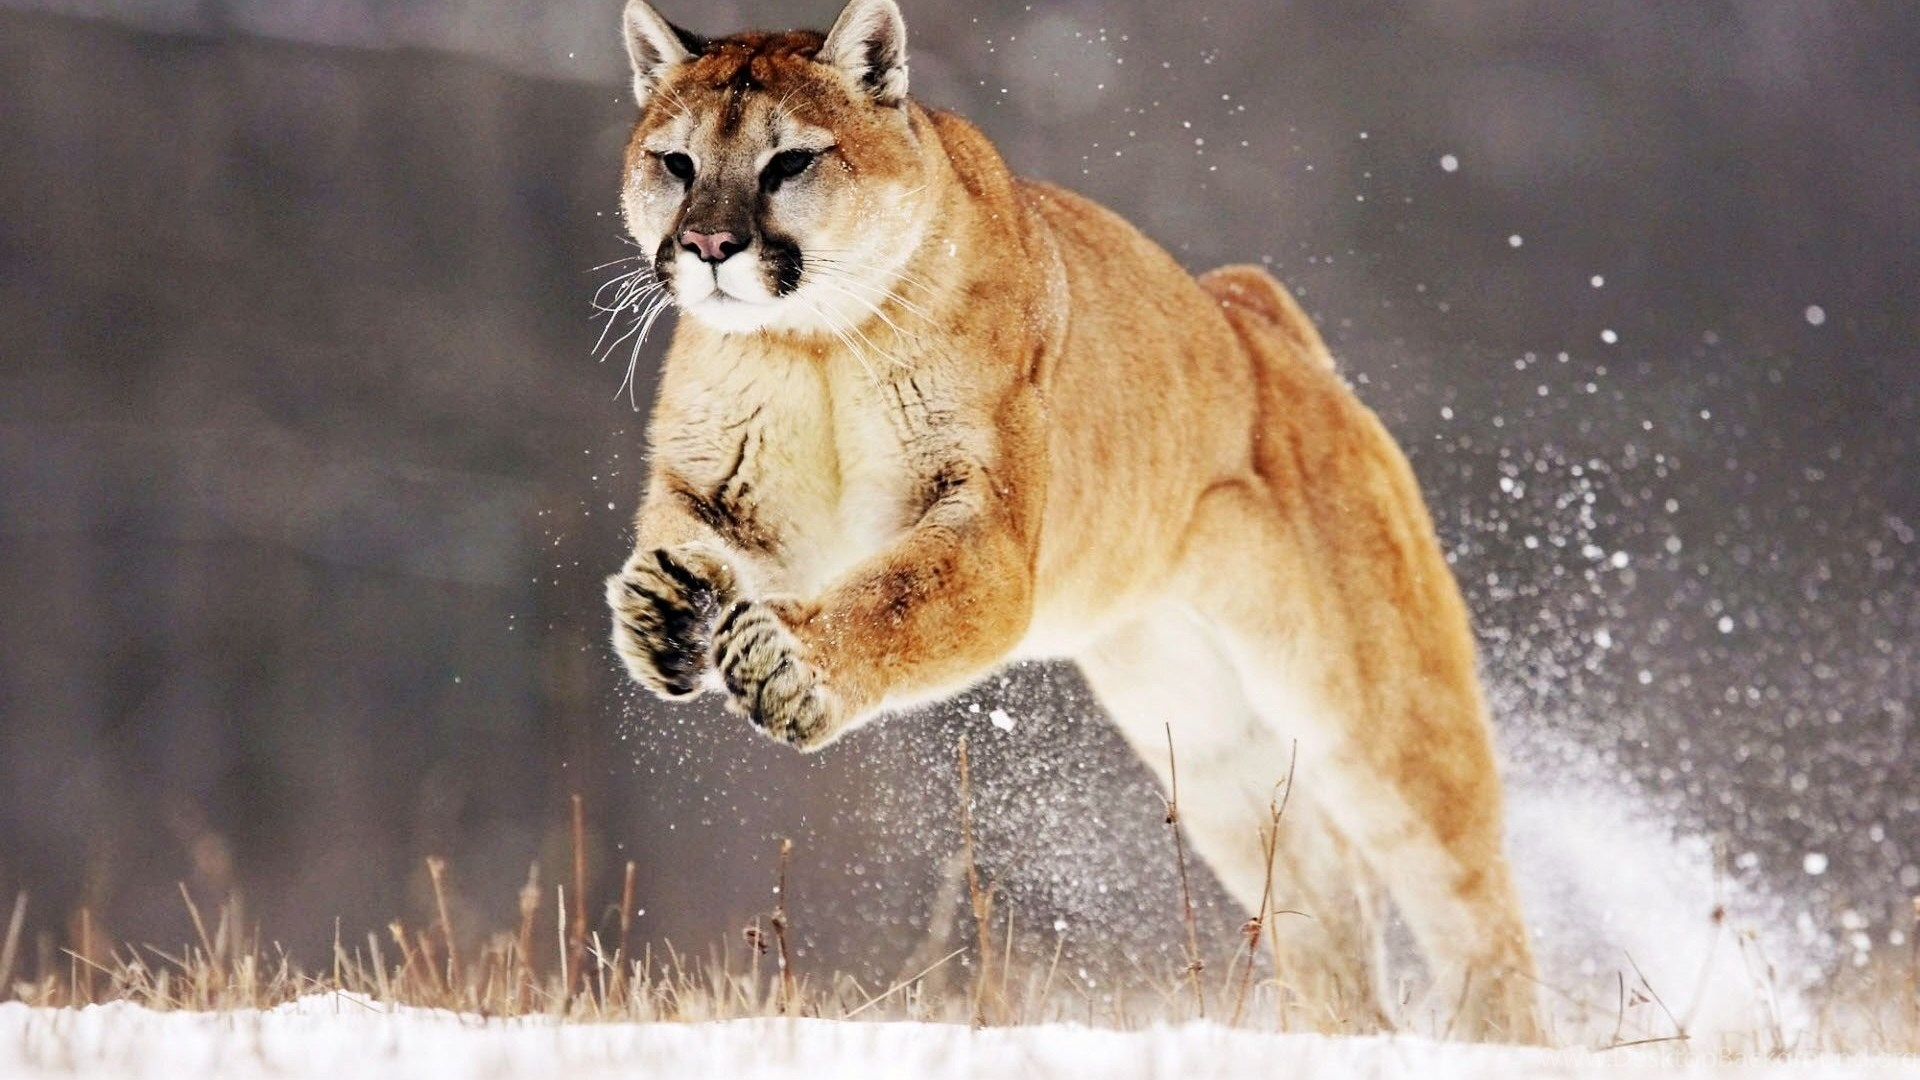 Mountain Lion 4k Or Hd Wallpapers For Your Pc Mac Or Mobile Device